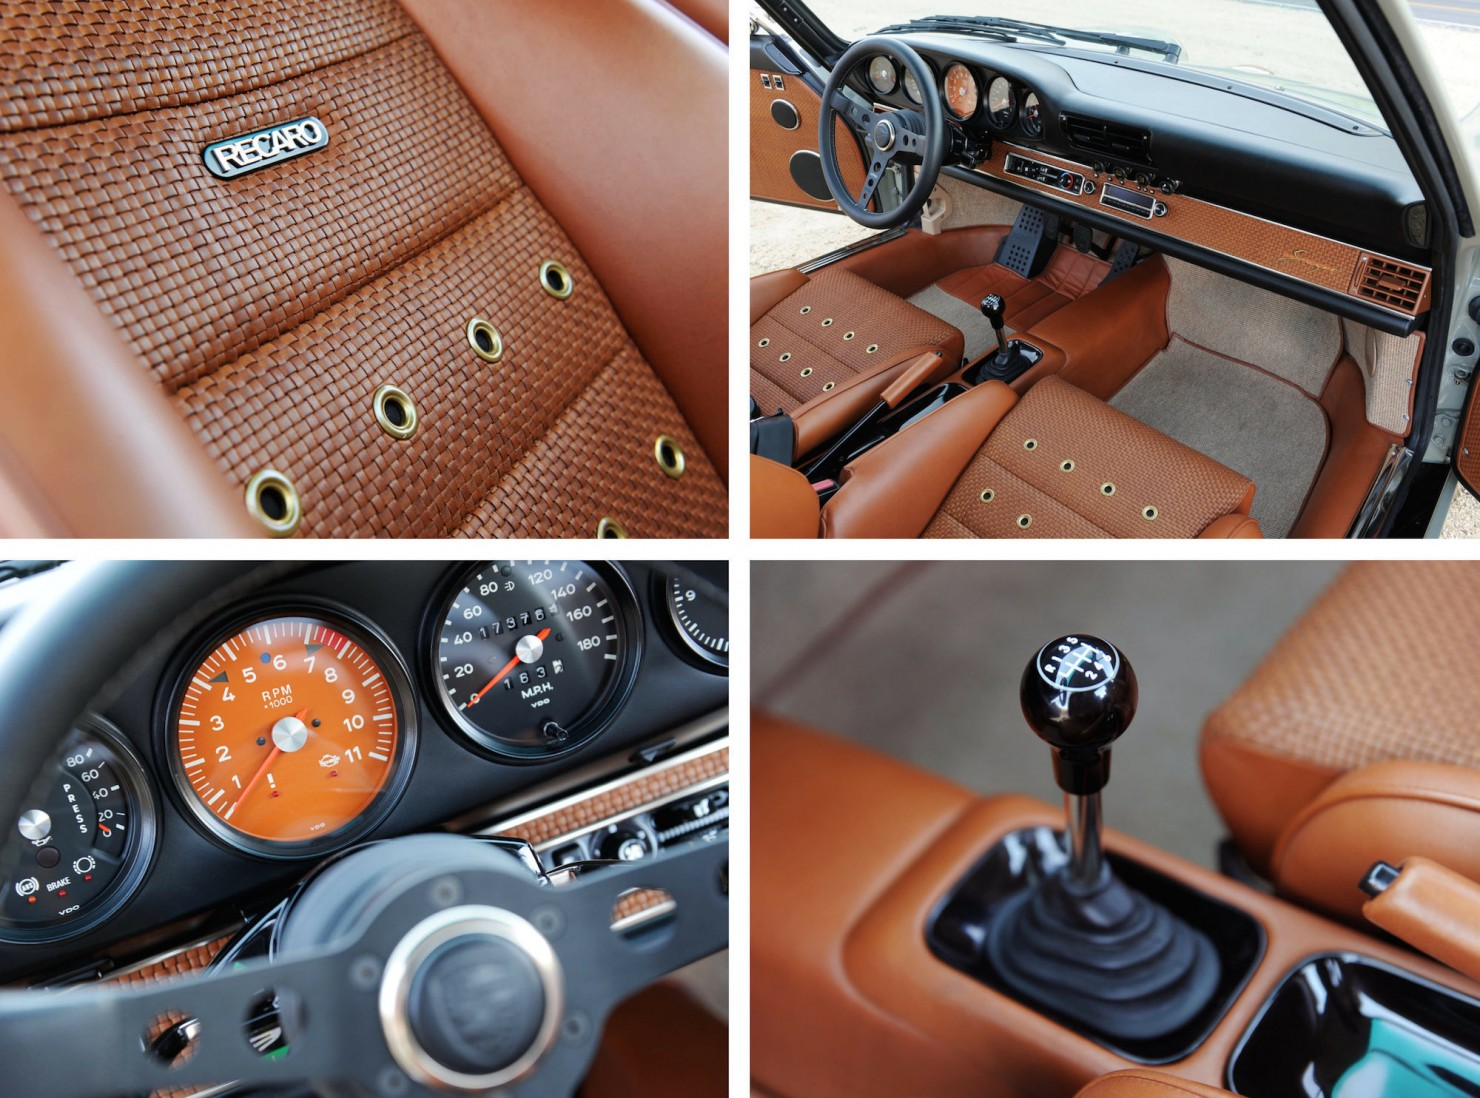 Porsche 911 x singer vehicle design for Porsche 911 interieur